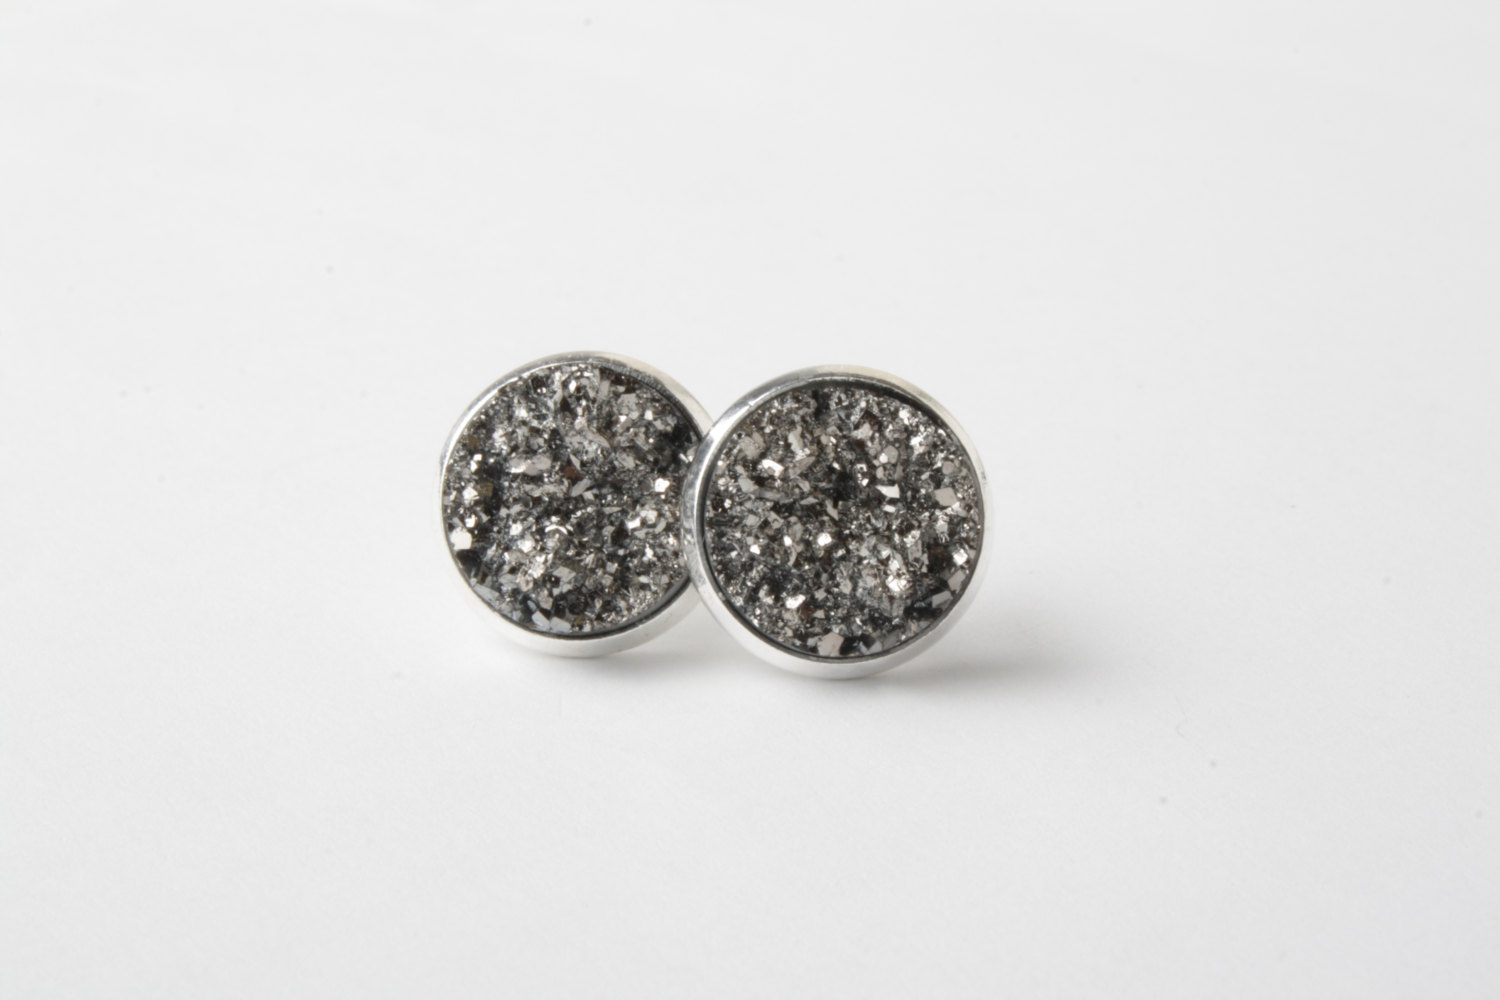 sparklingjewellery silver heart com products bcaa stud earrings sparkly sterling